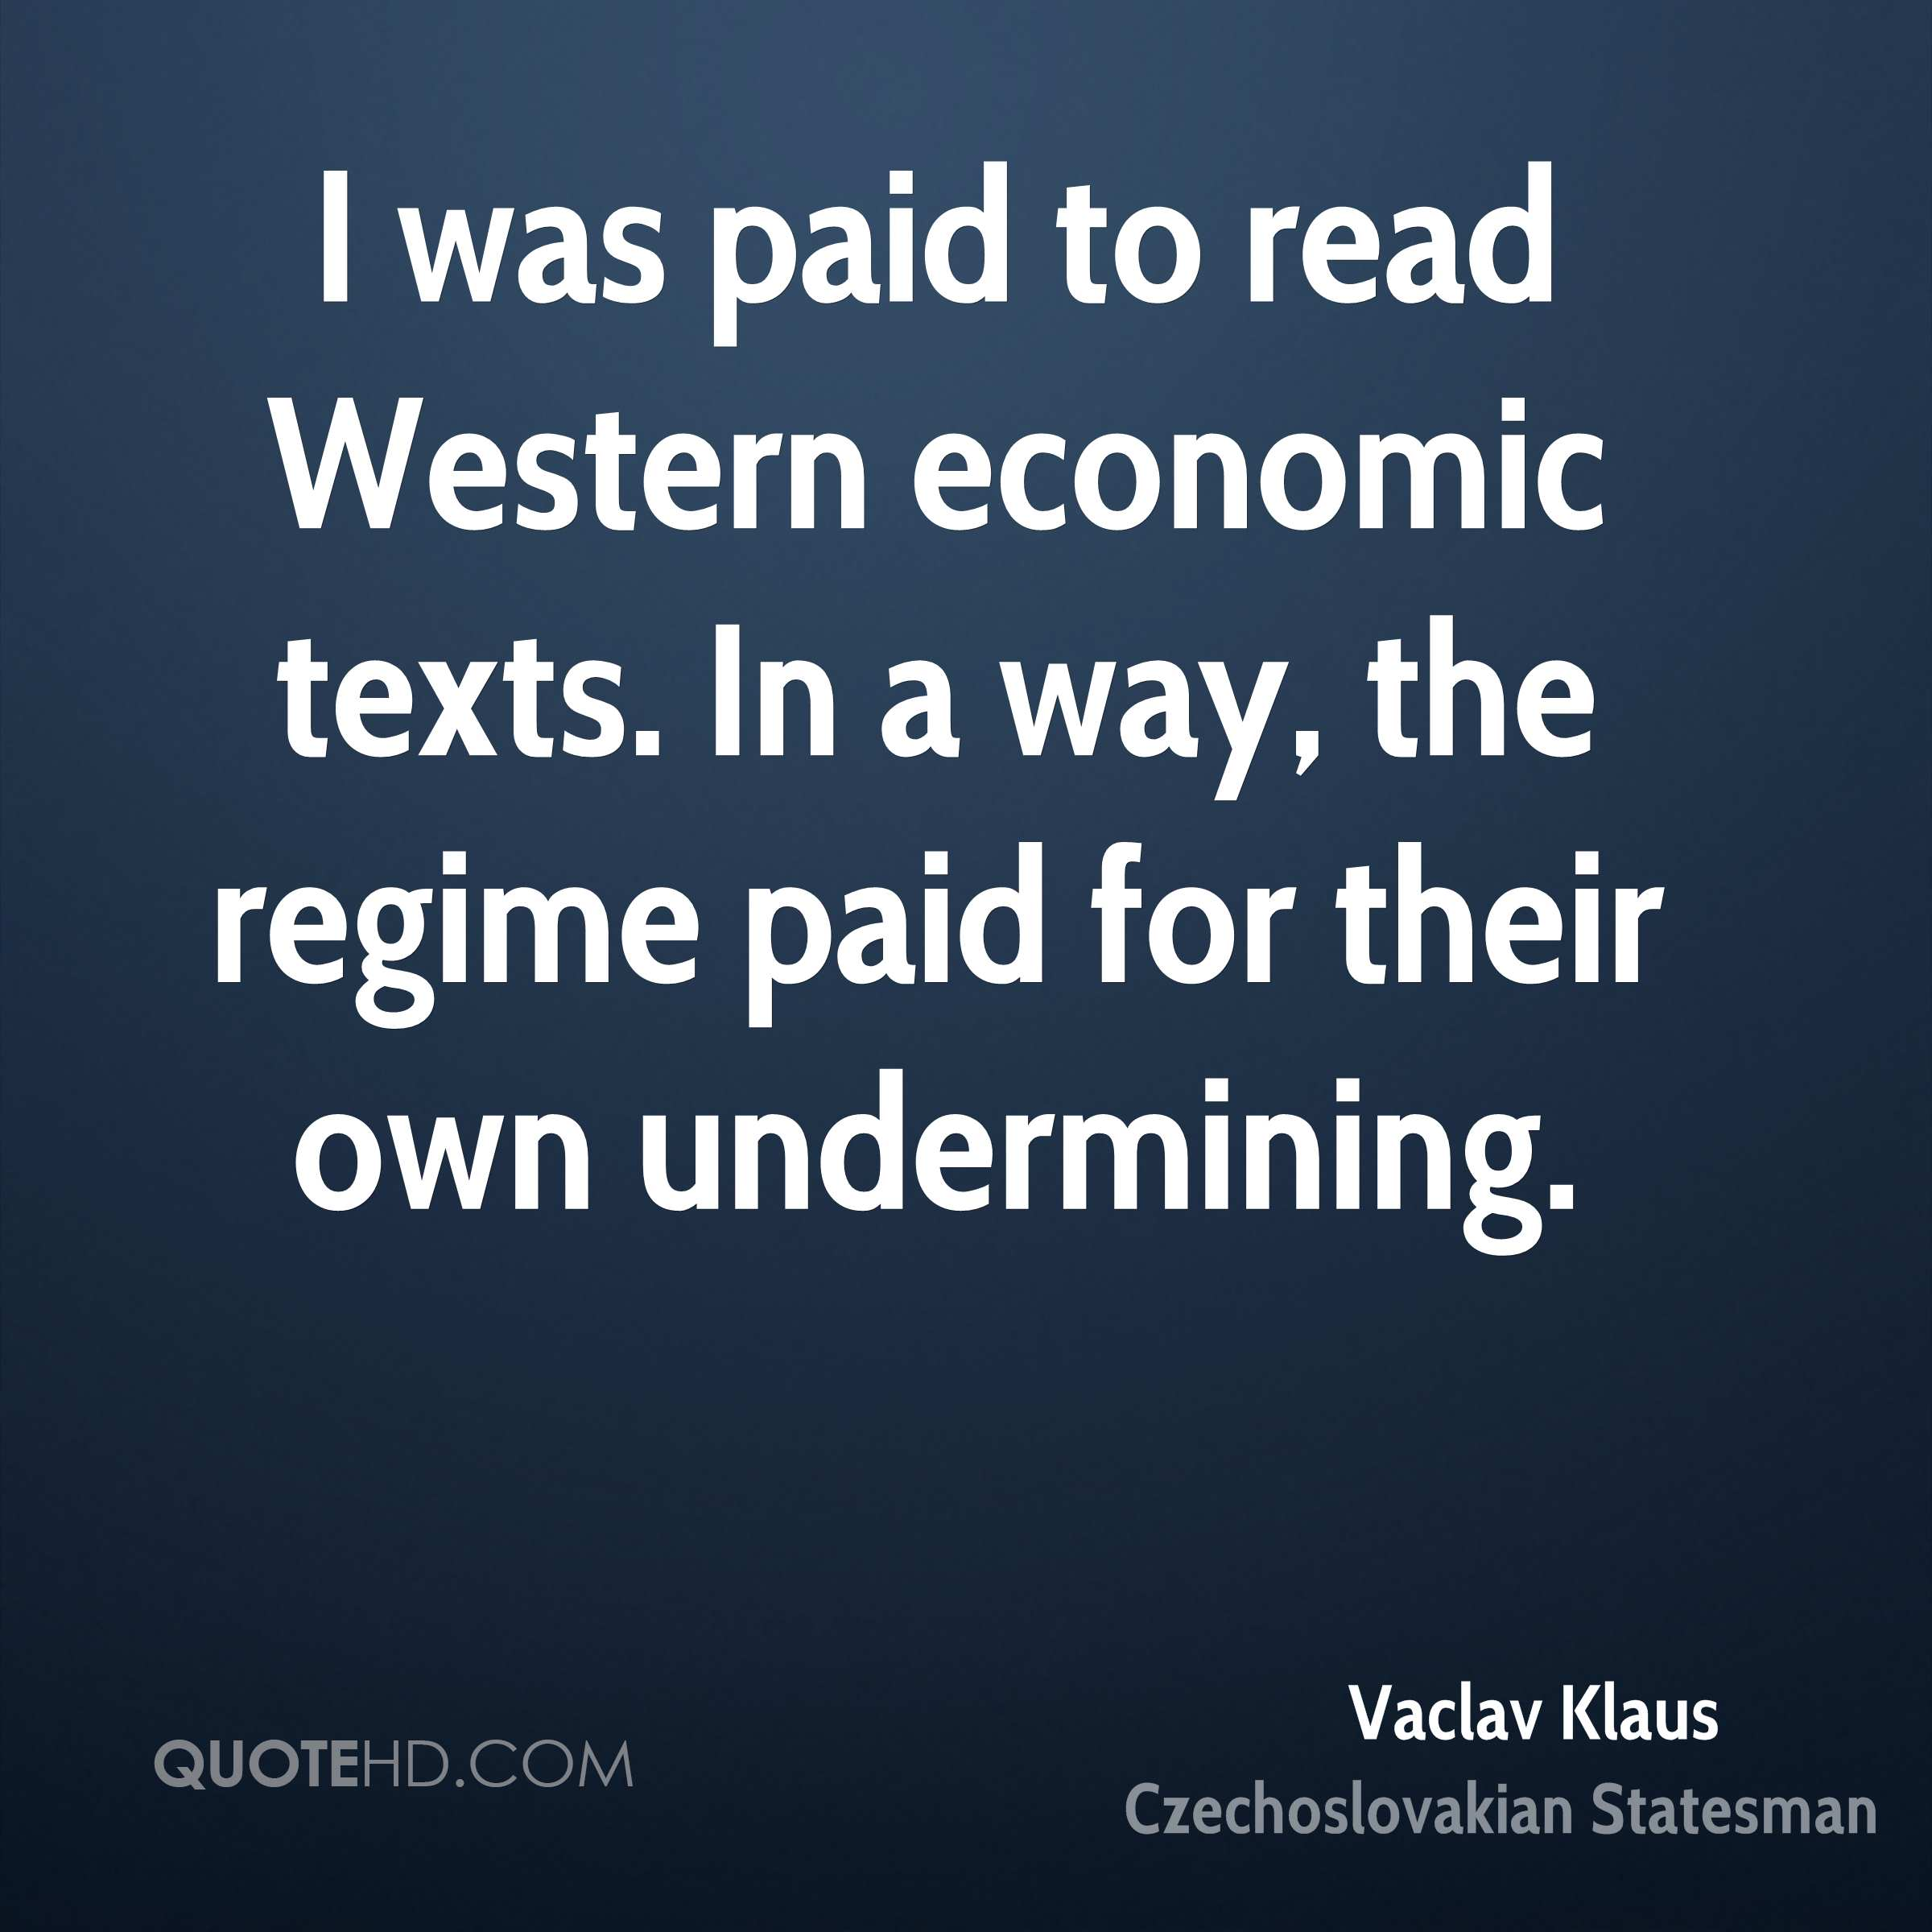 I was paid to read Western economic texts. In a way, the regime paid for their own undermining.